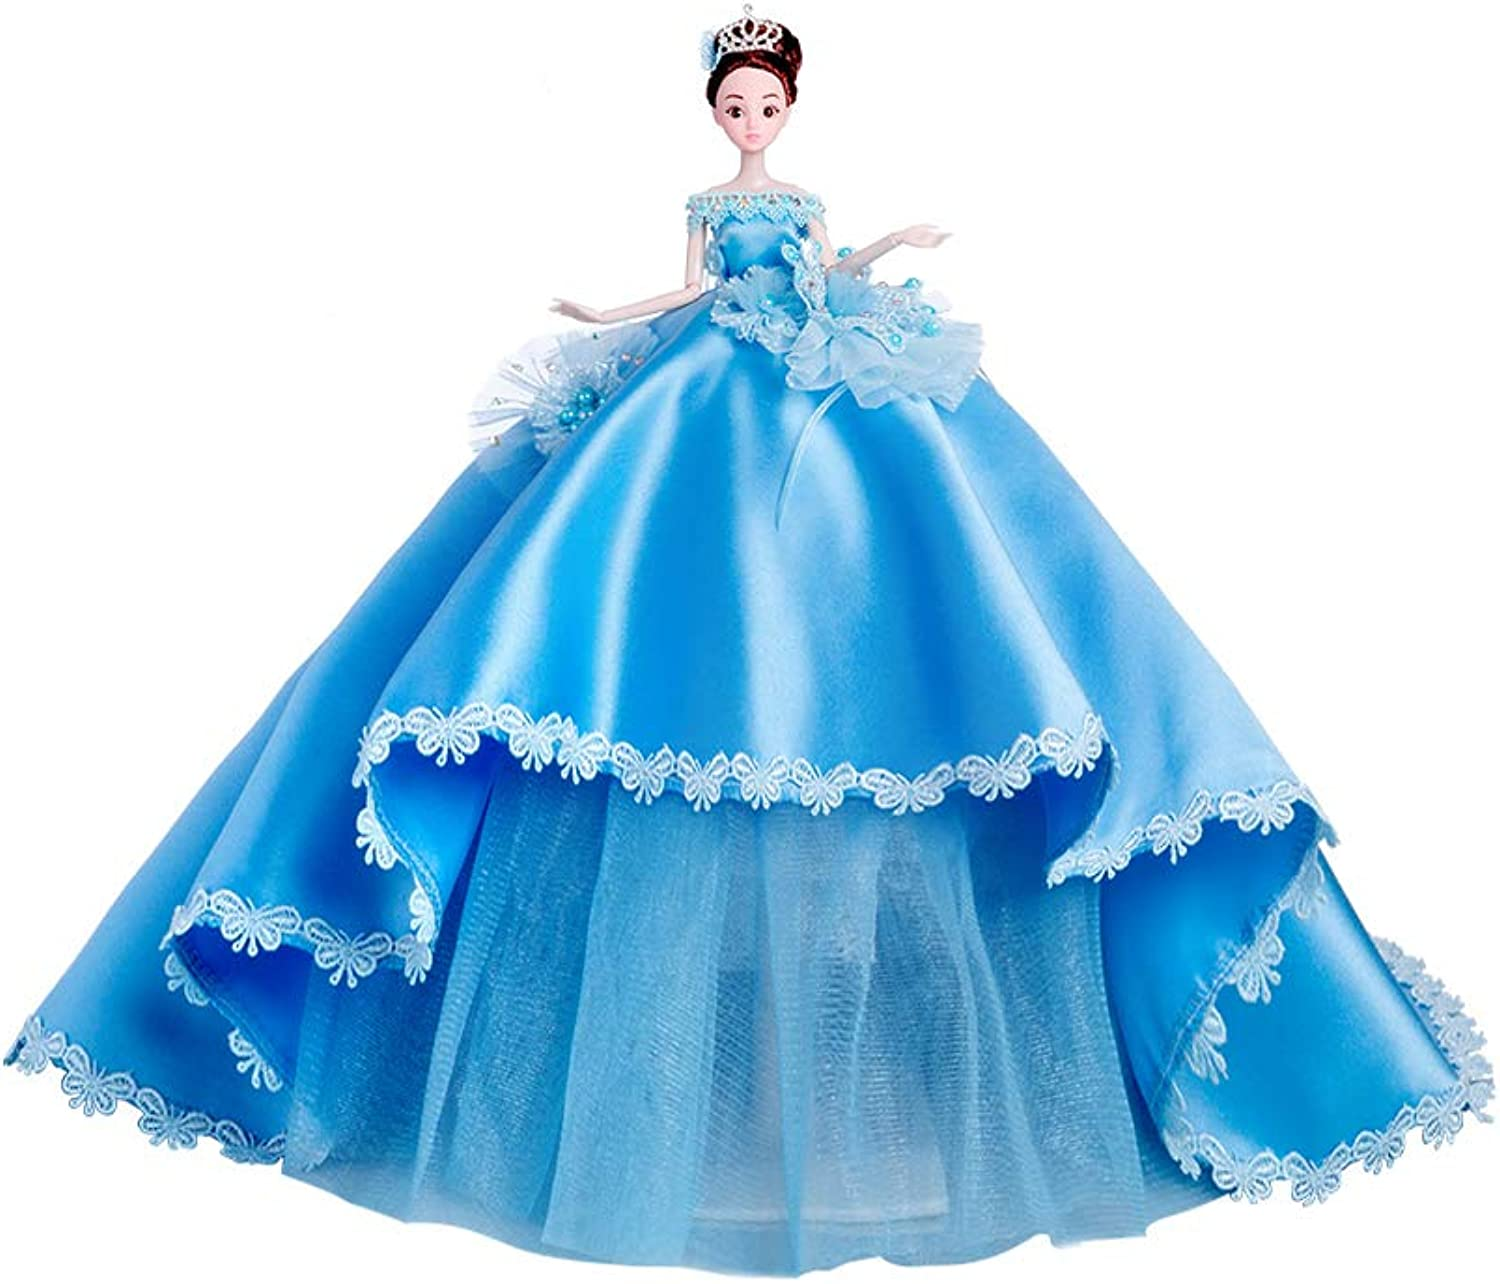 Wedding Dress Can Be Replaced with bluee Big Tail Princess Doll Luxury Girl Birthday Gift